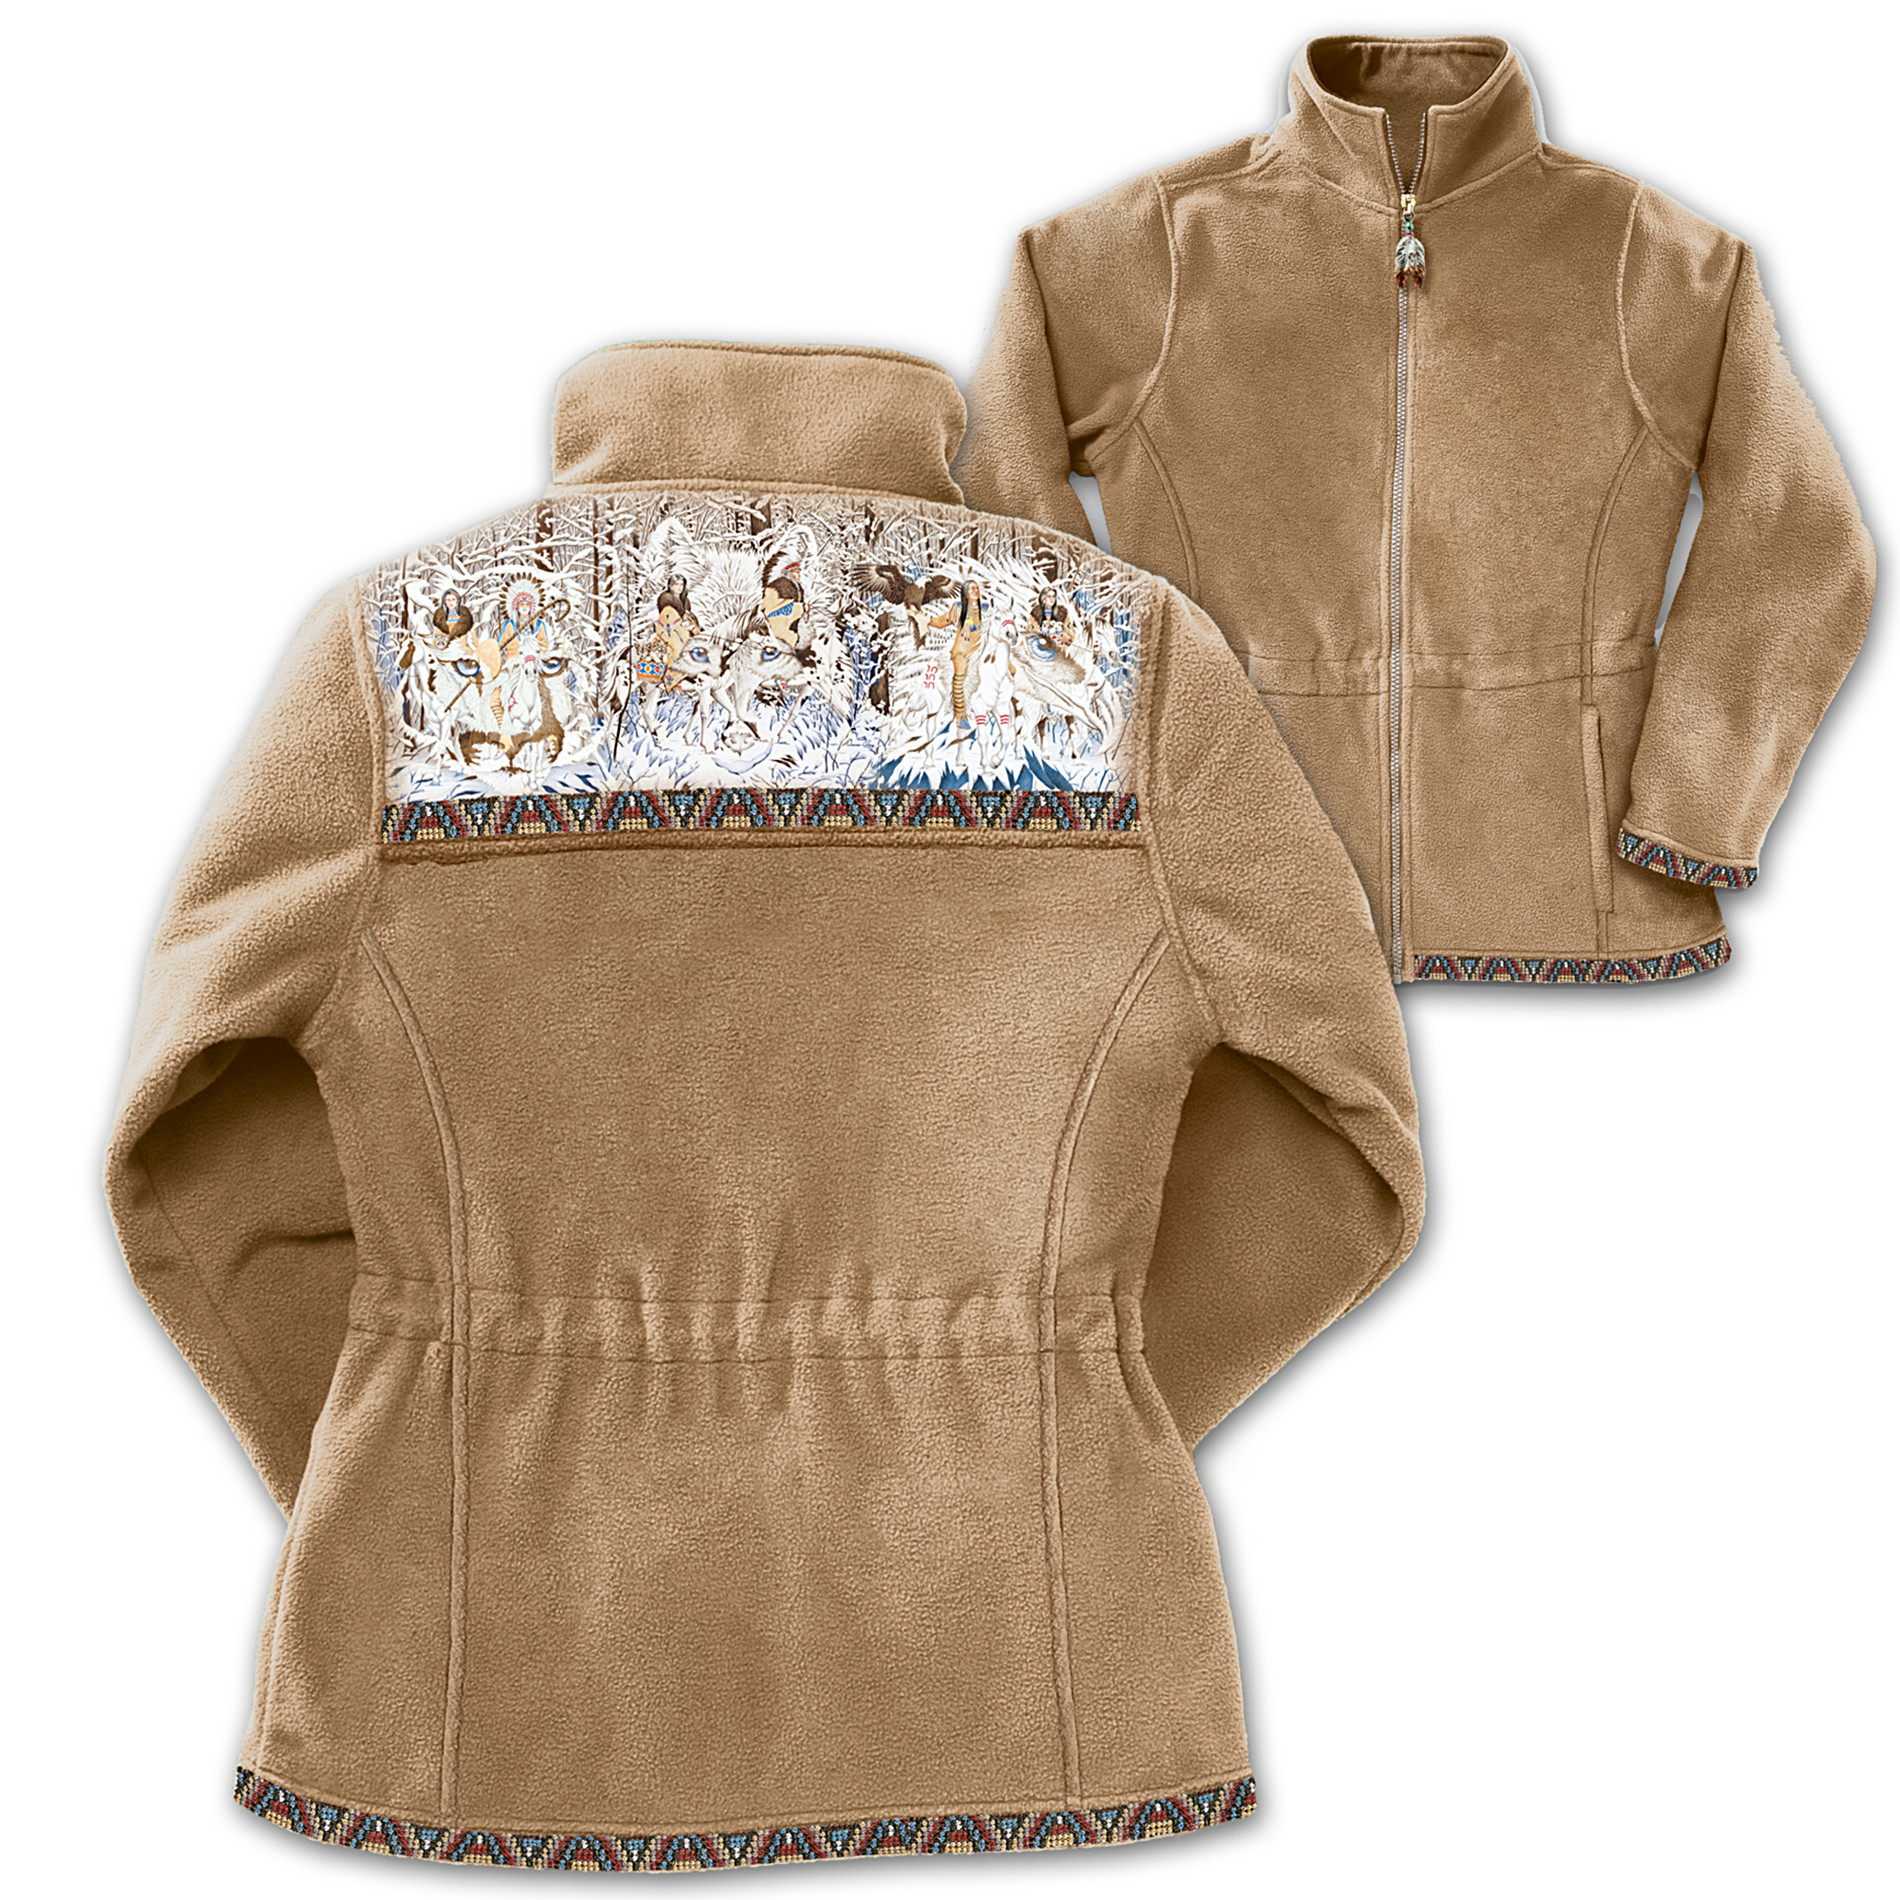 The Bradford Exchange Spirits In The Wilderness Fleece Jacket at Sears.com